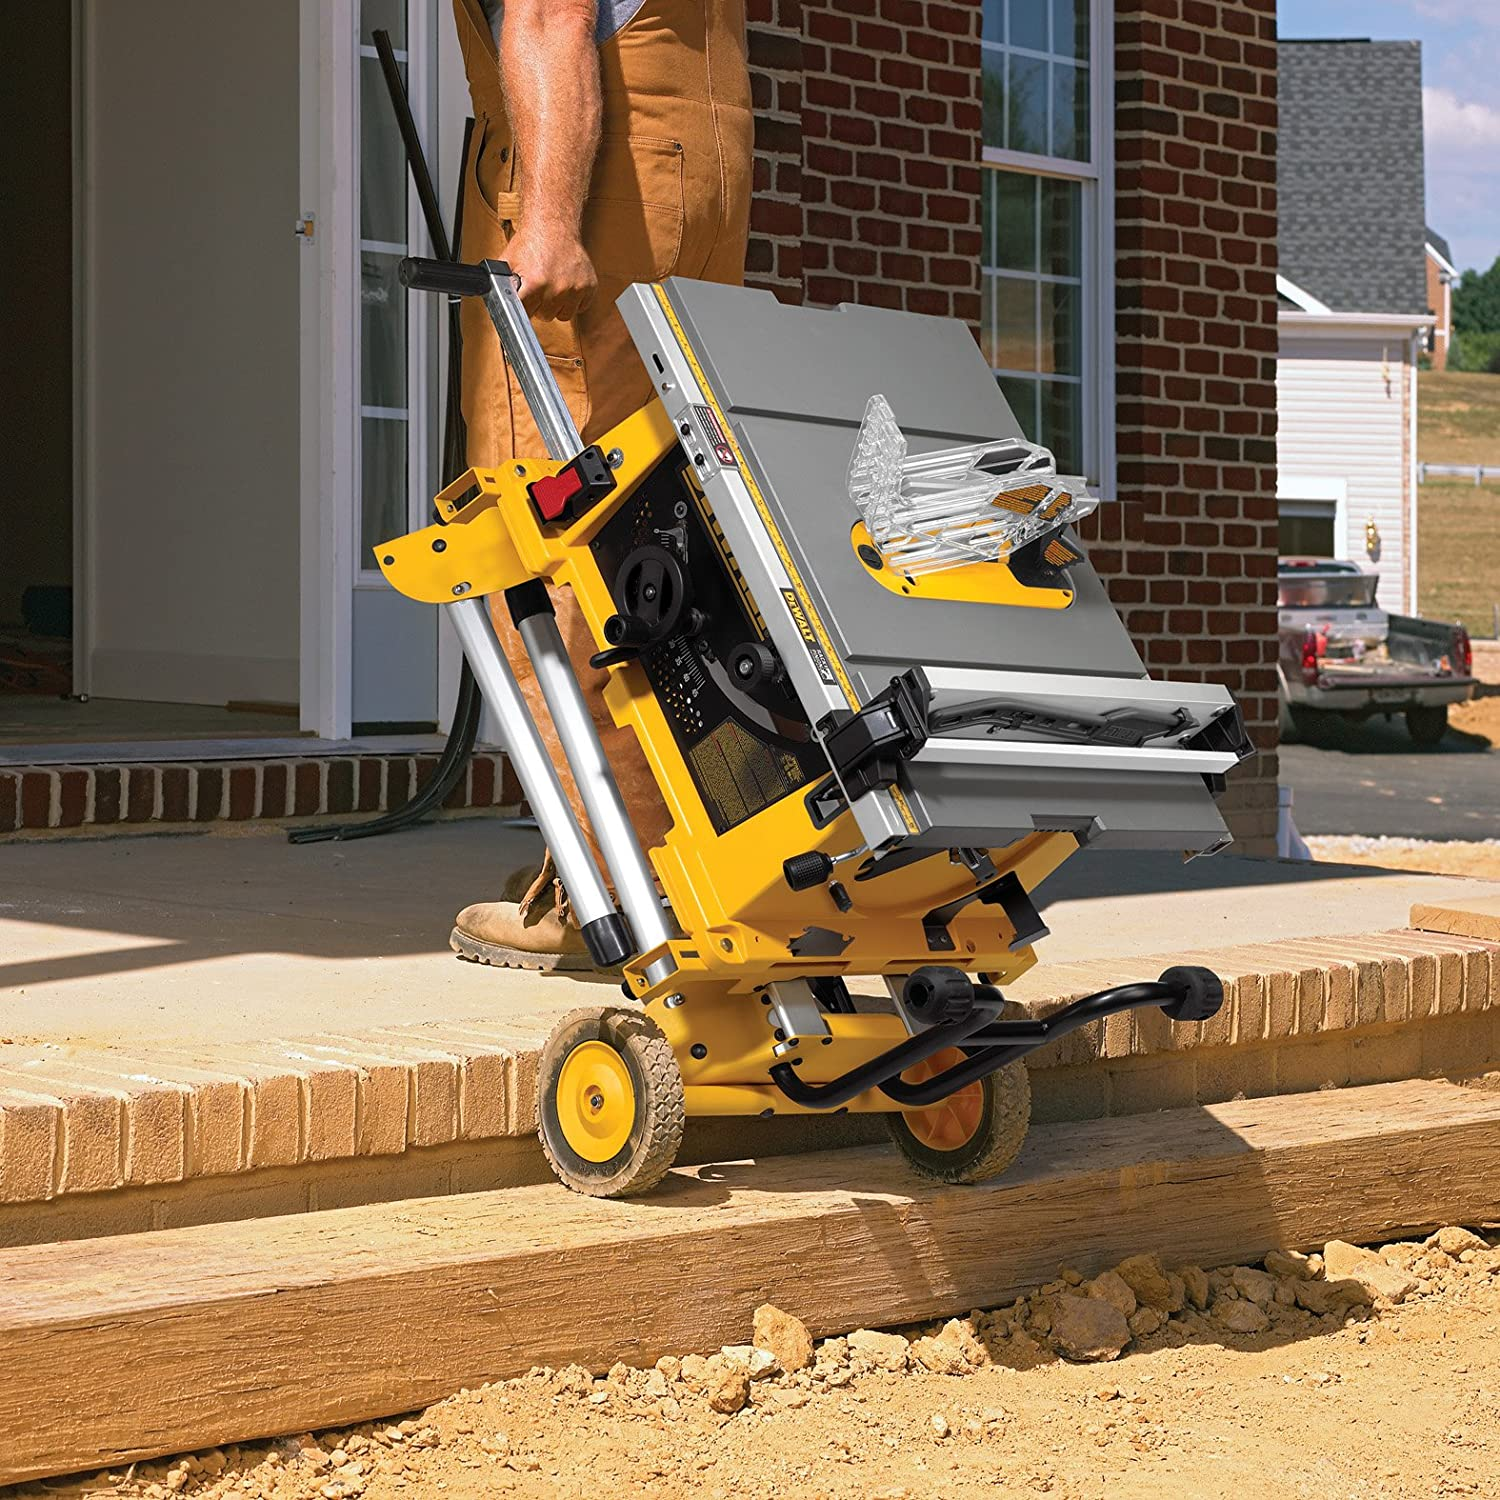 DEWALT DW744XRS 10-inch Job Site Table Saw with Rolling Stand ...